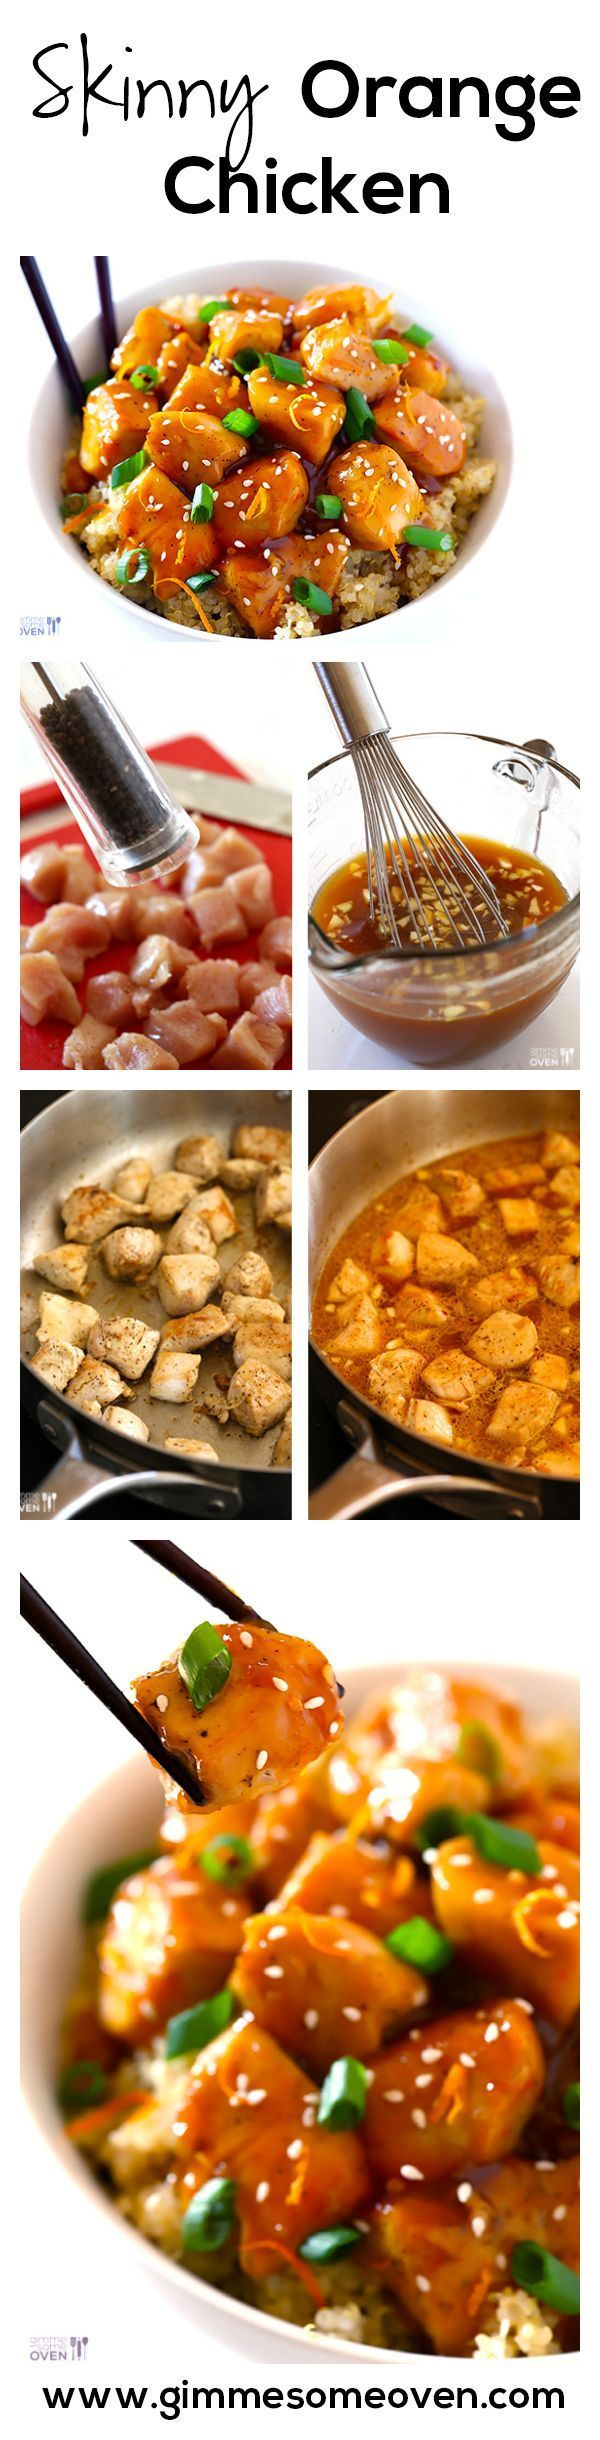 SKINNY Orange Chicken Recipe — All of the flavor you love, without all of the calories.